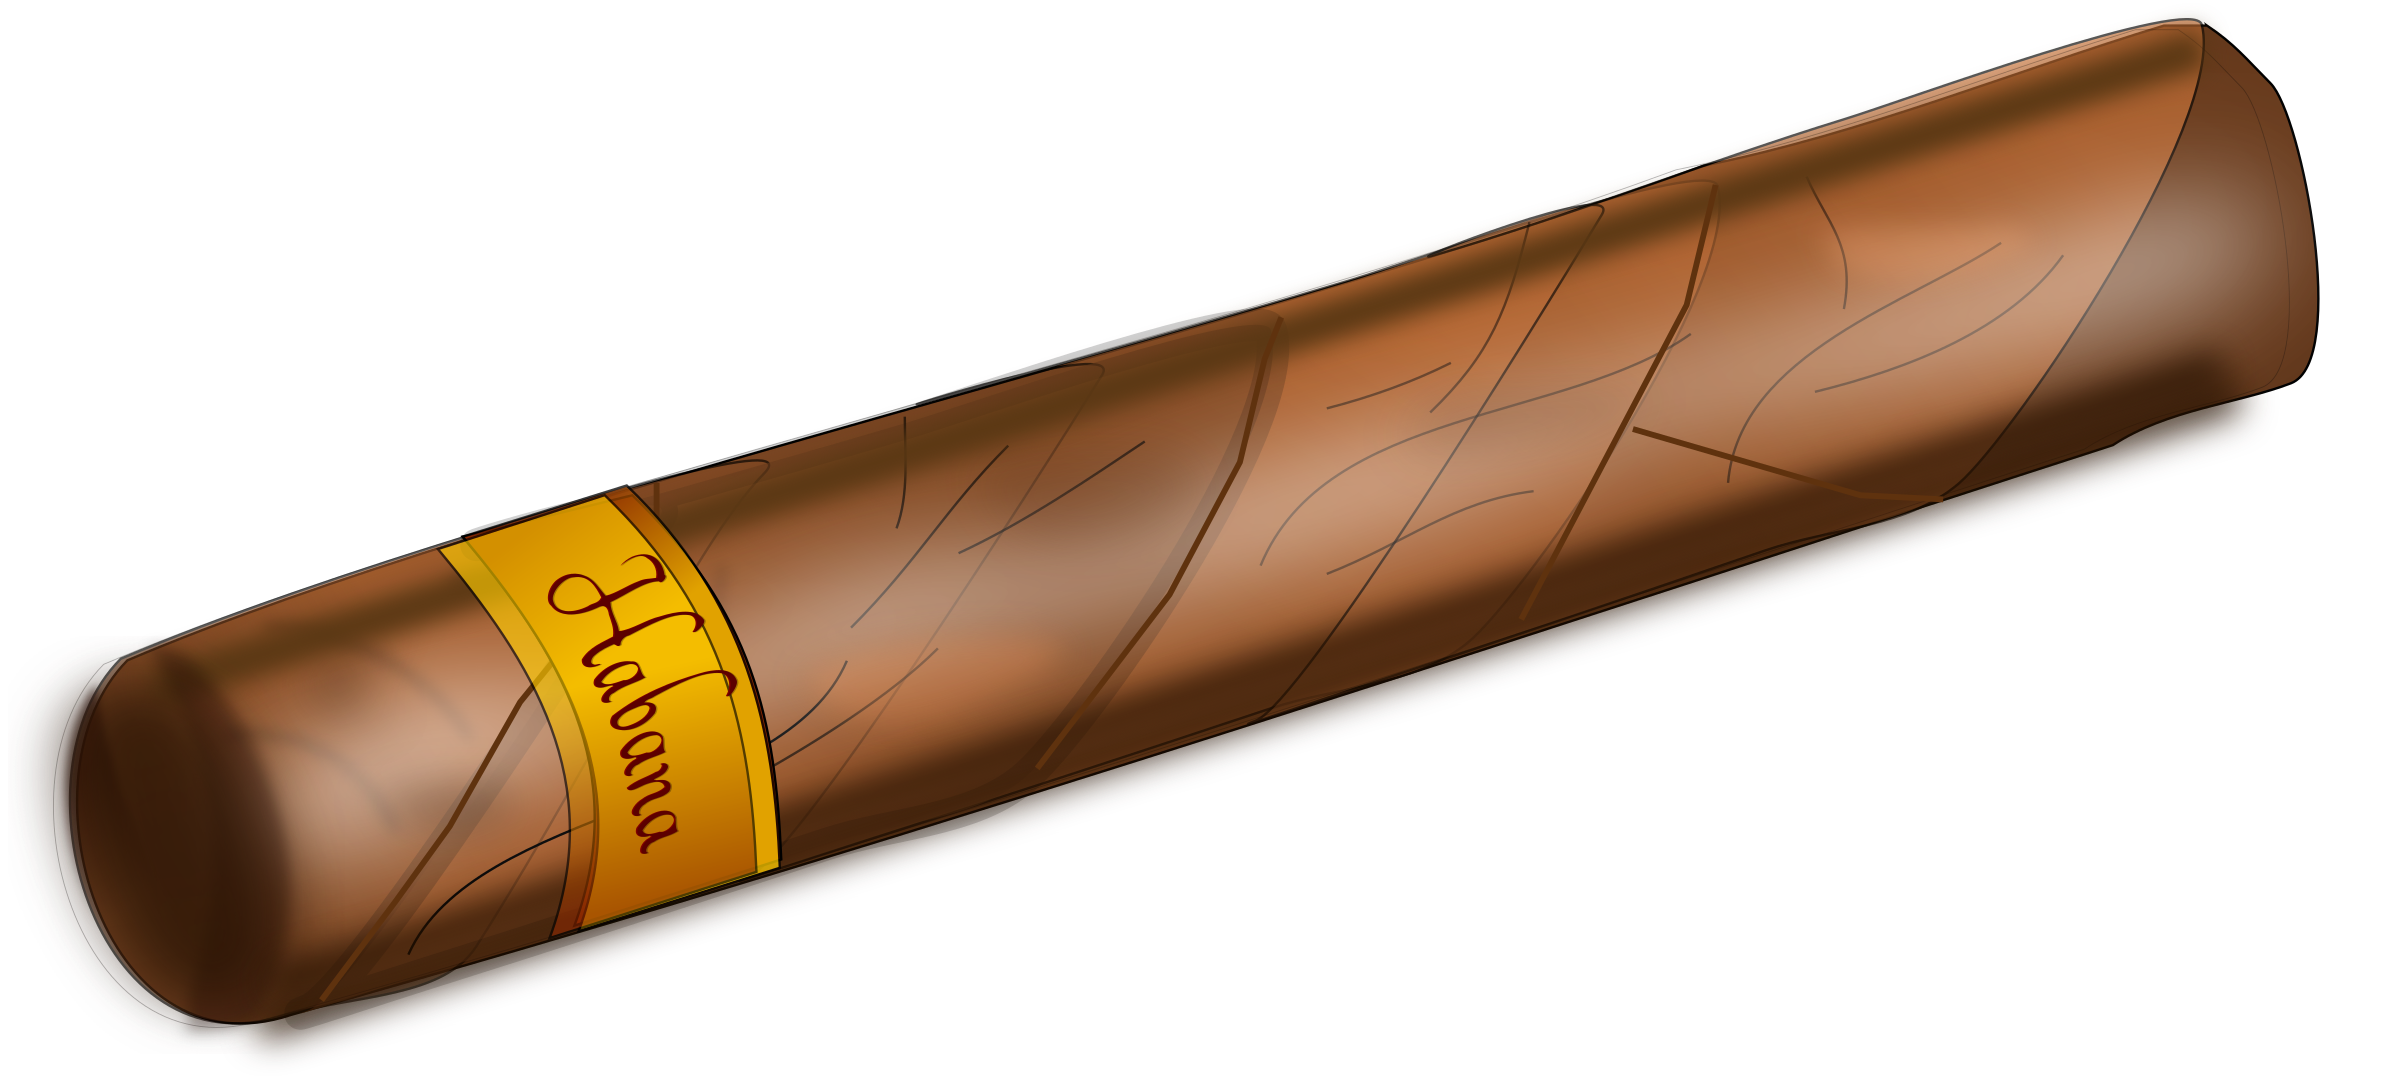 Cigar clipart transparent background. Pencil and in color